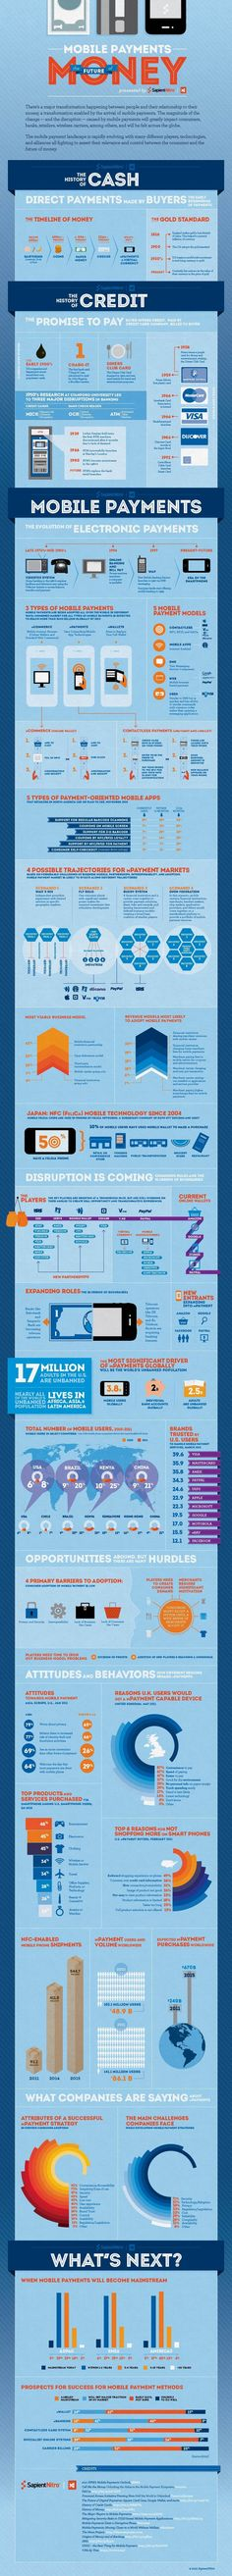 Mobile Payments and the Future of M-Commerce